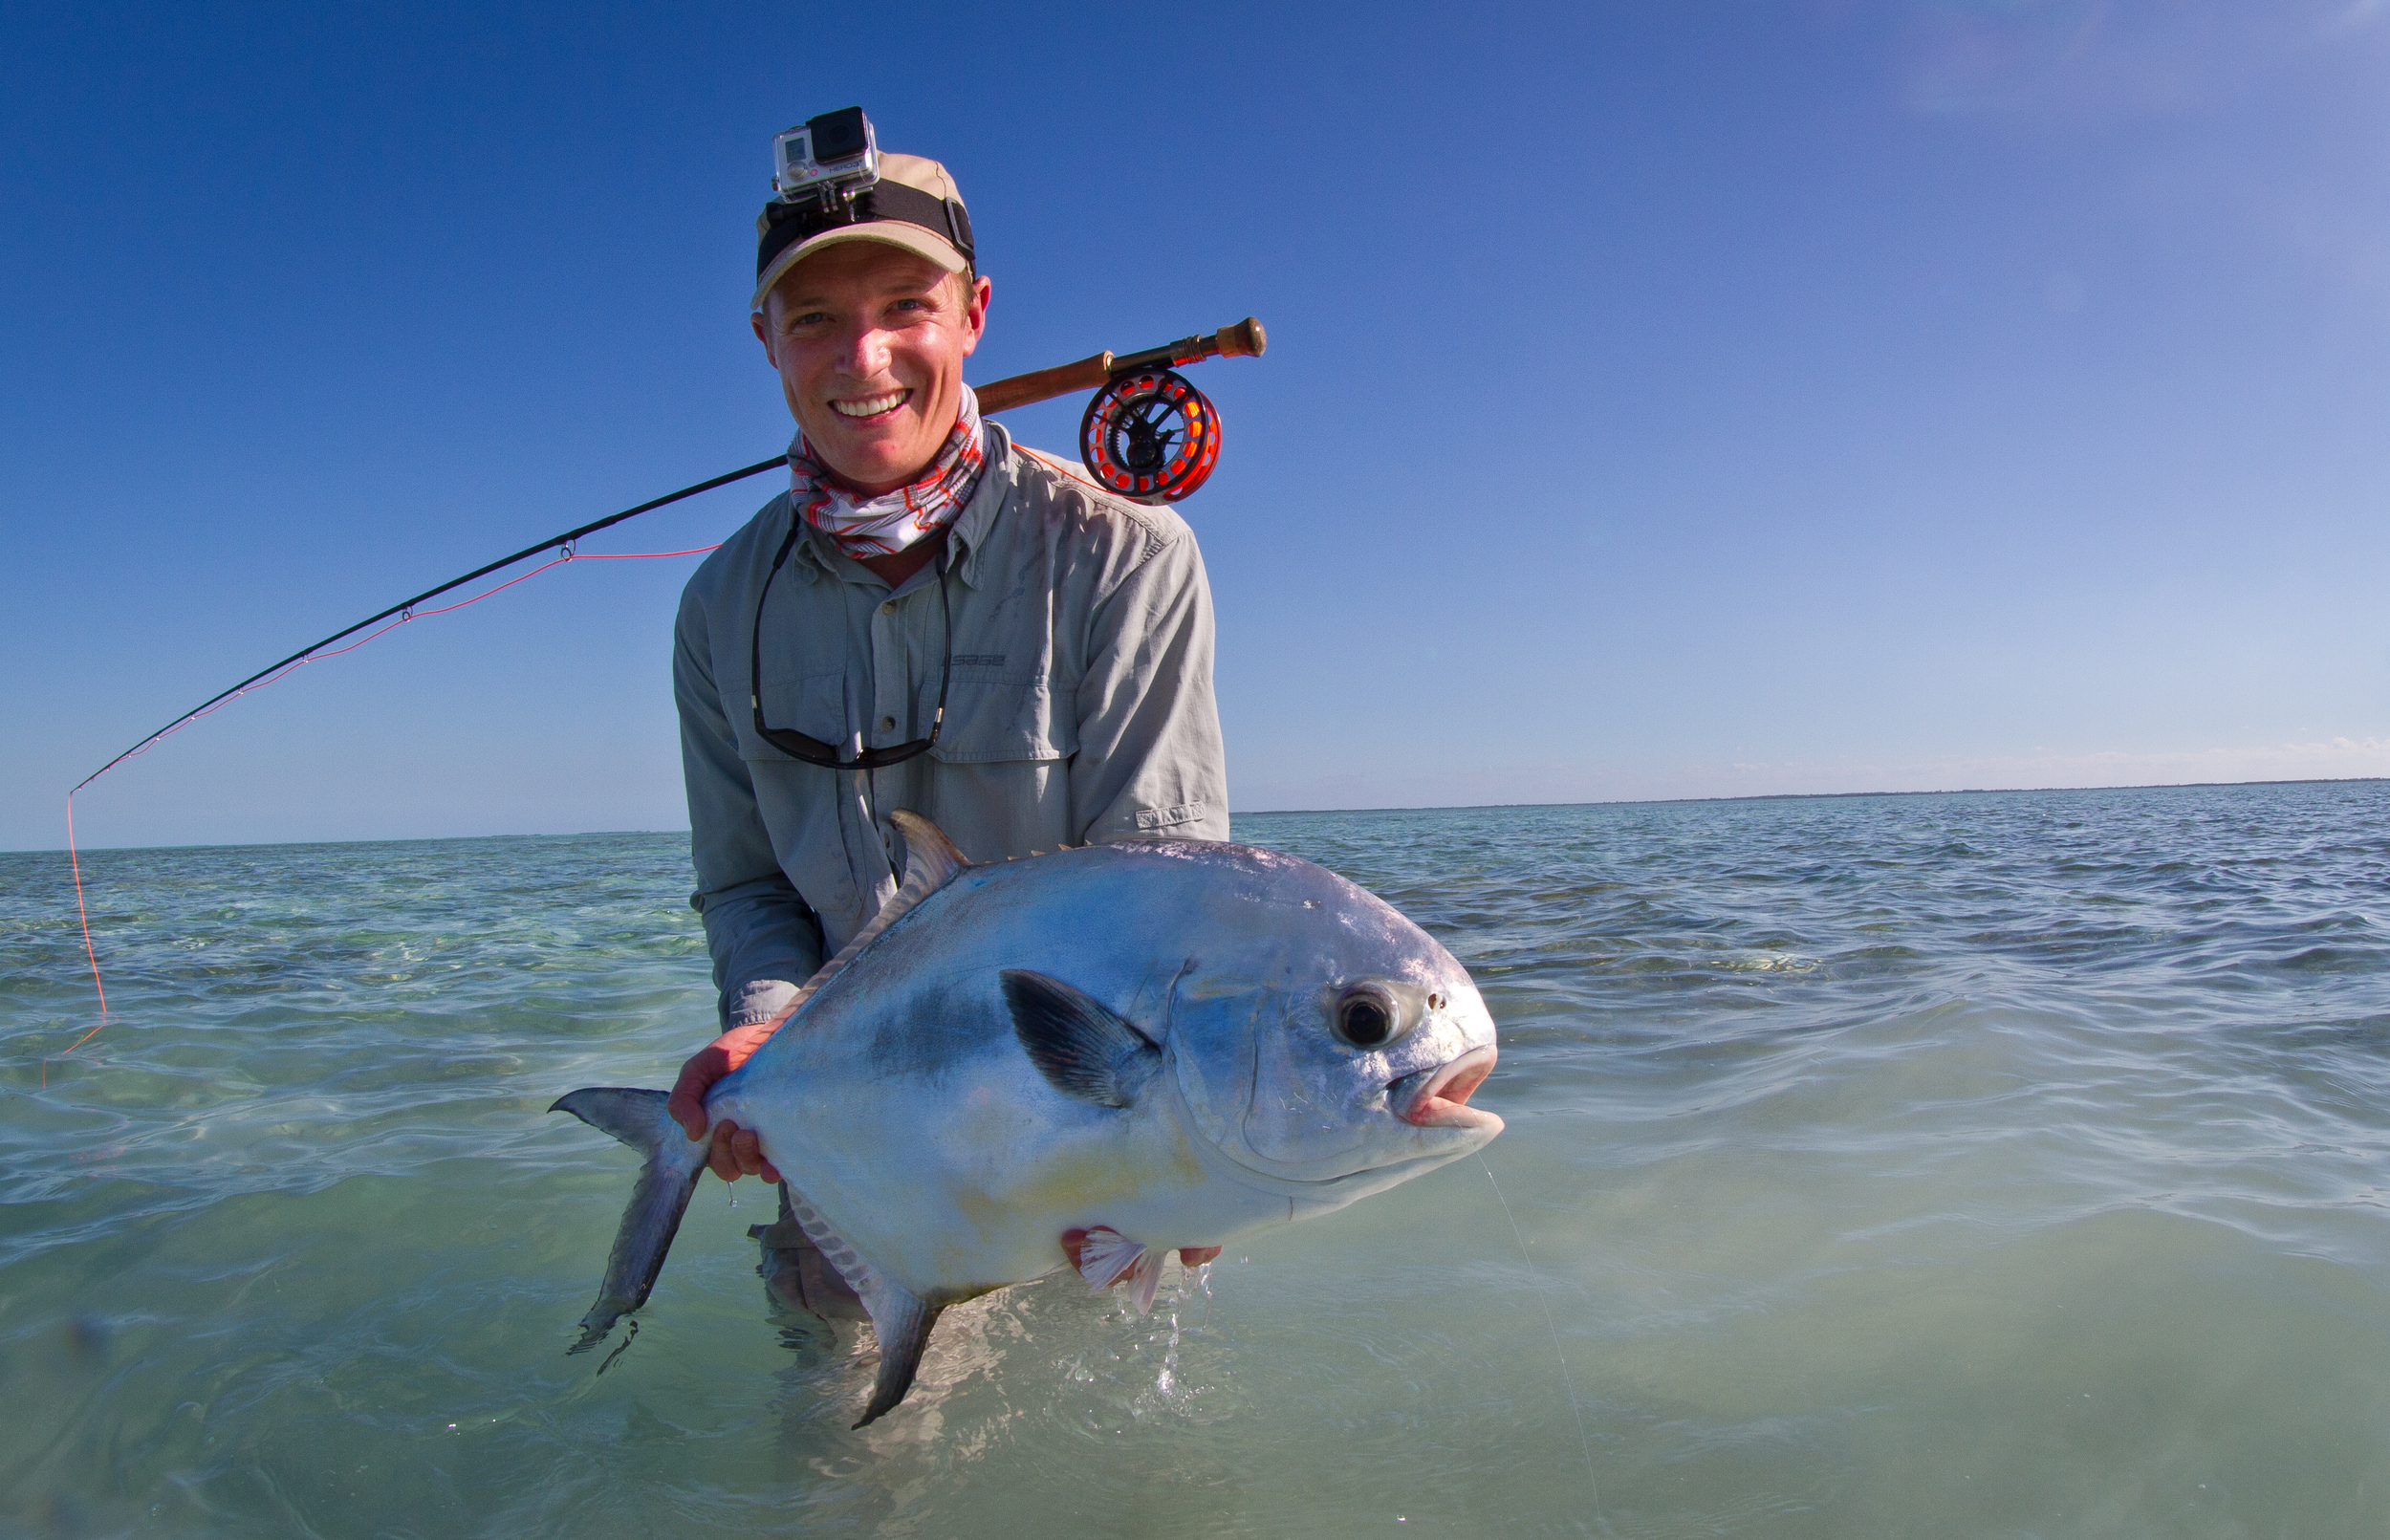 First ever landed Permit for this Australian angler, Cayo Largo, Cuba